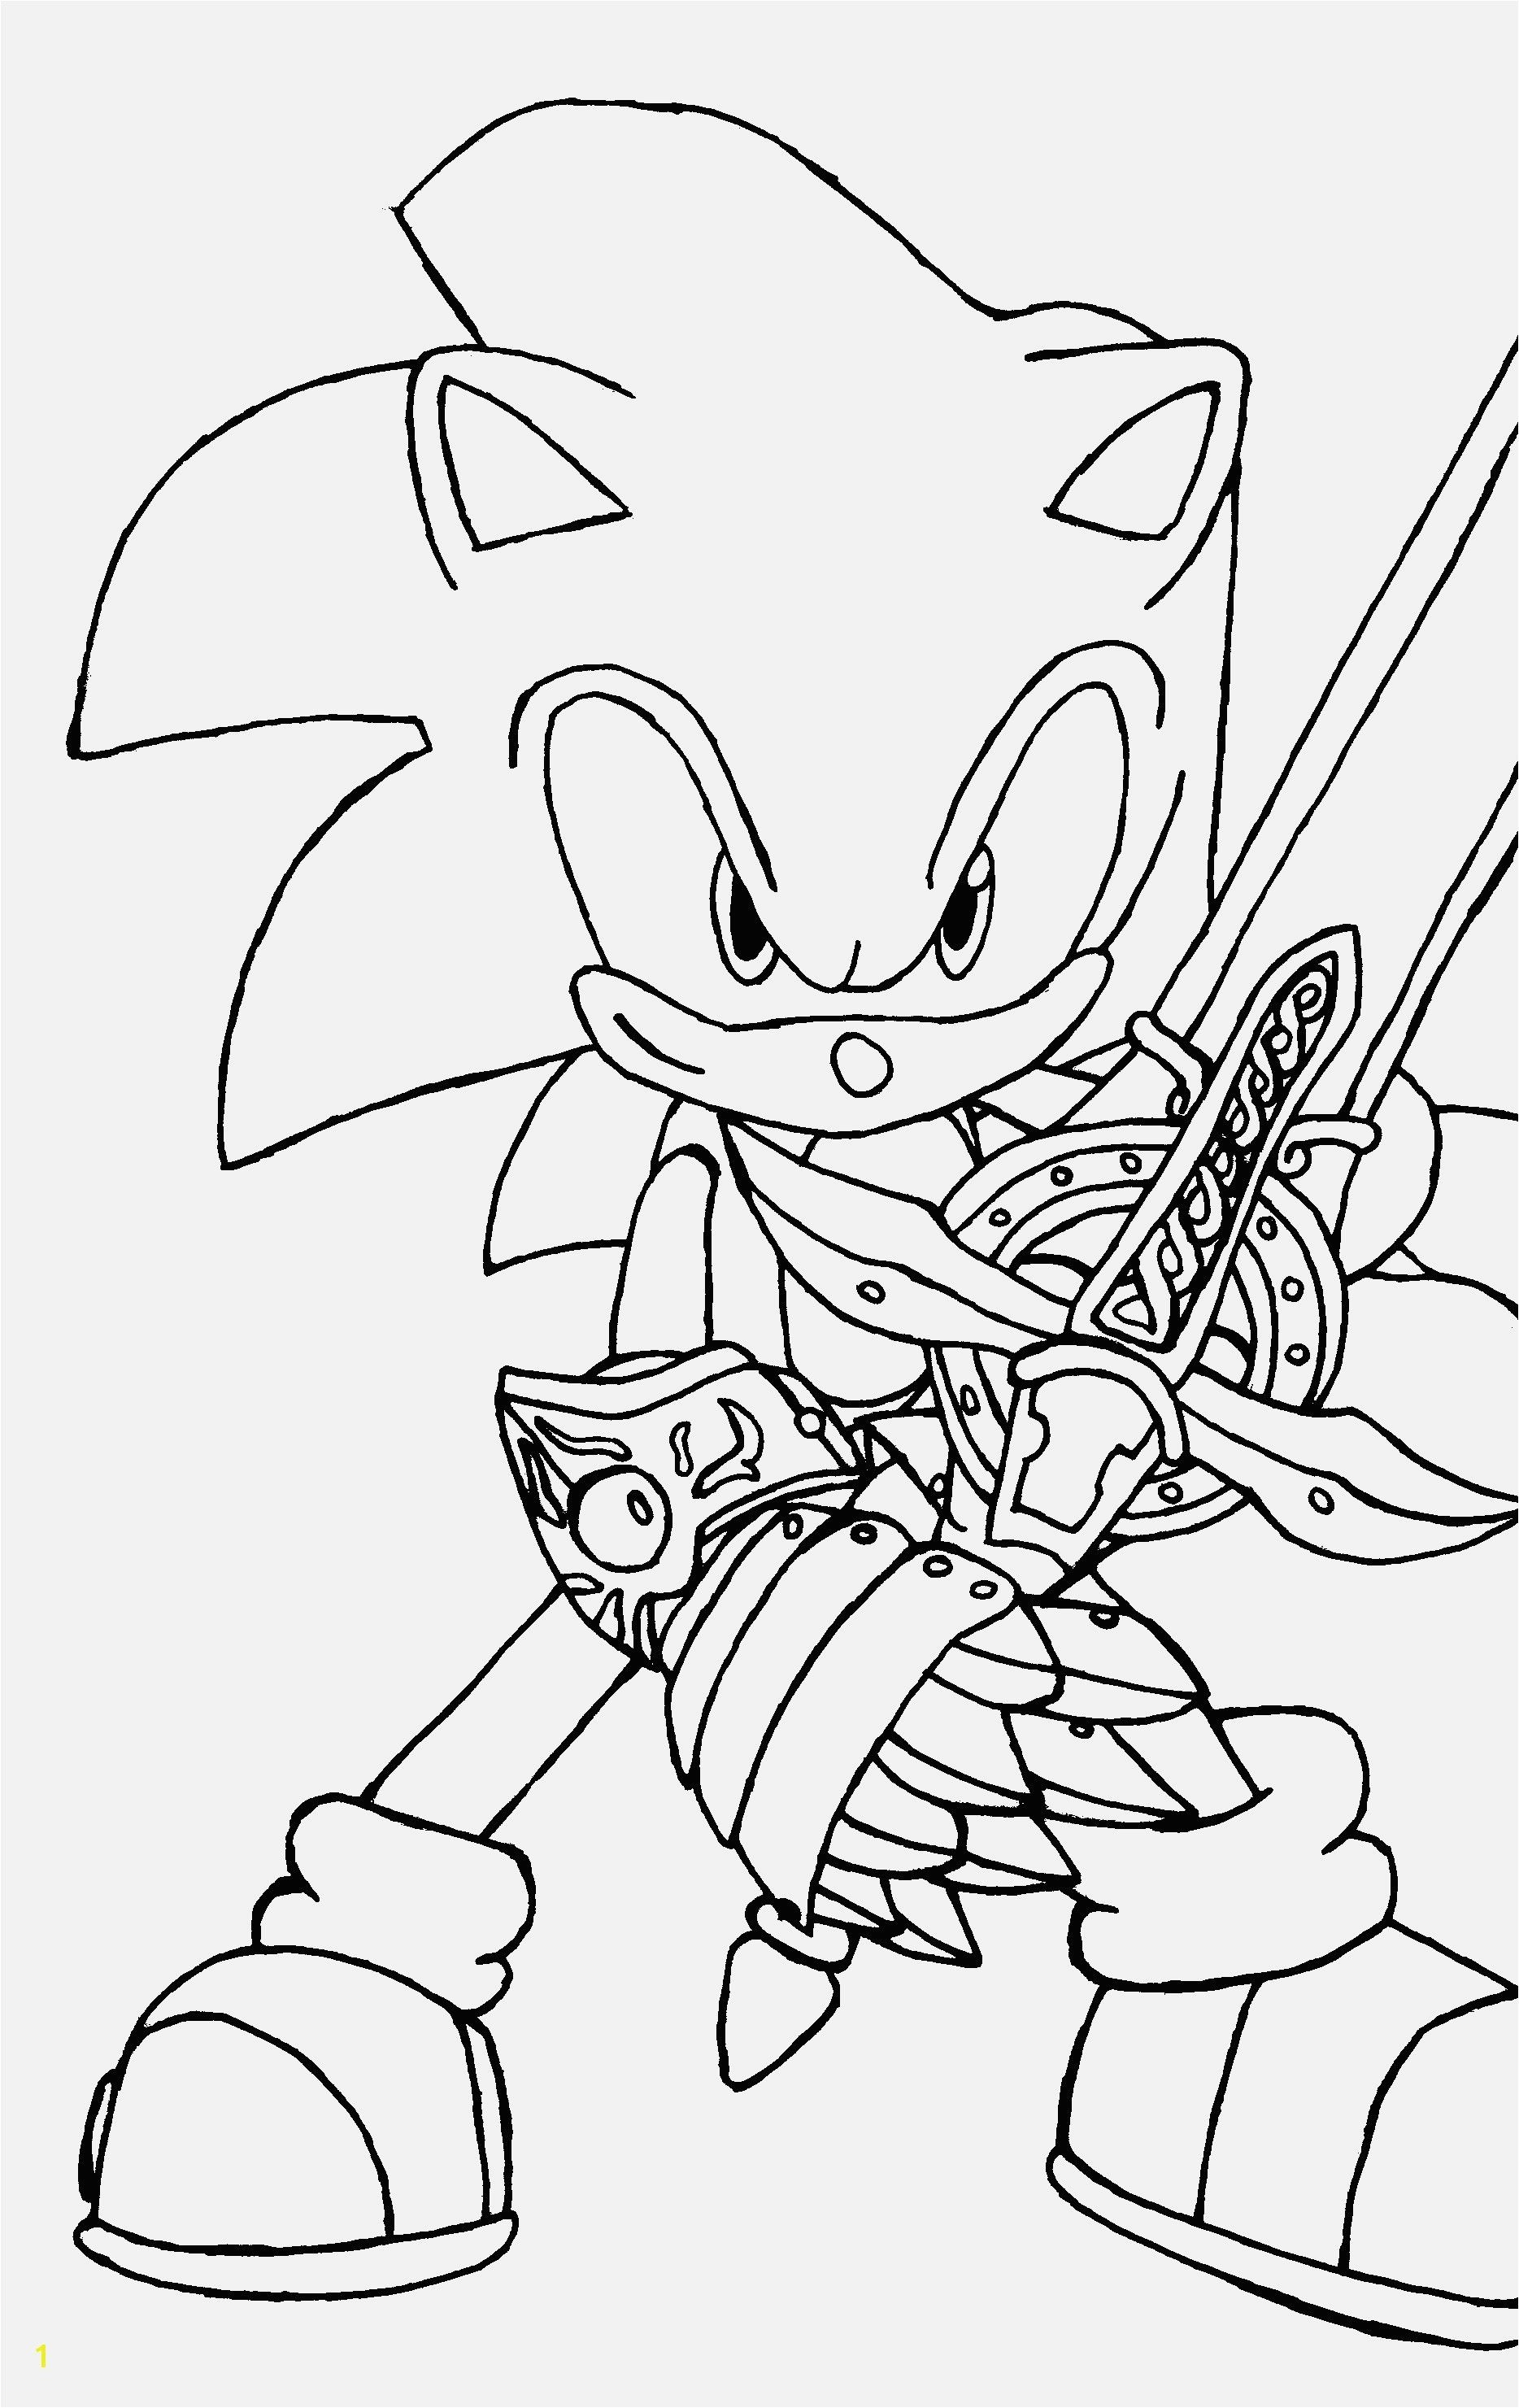 27 Inspiration Image Of Sonic Coloring Page Entitlementtrap Com Monster Coloring Pages Animal Coloring Books Coloring Pages For Kids